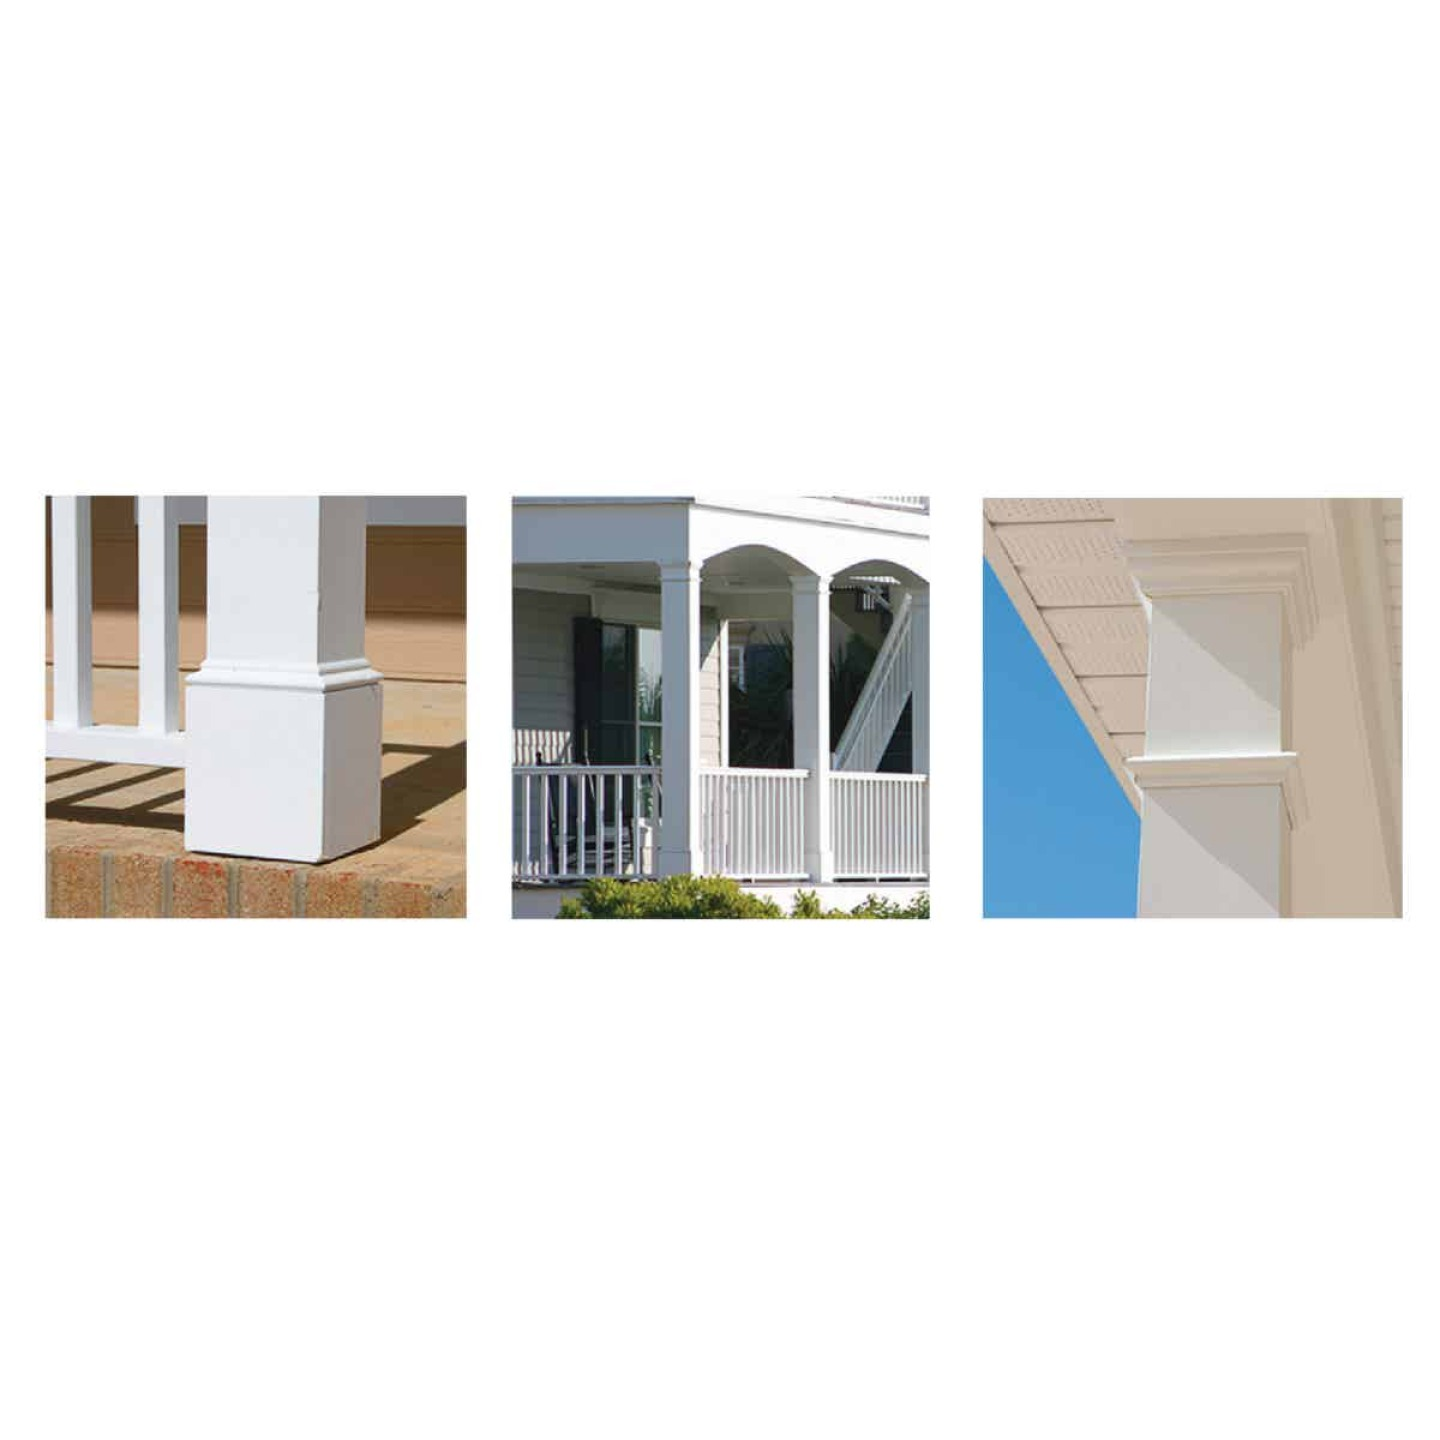 Crown Column DuraSnap 4 In. W x 4 In. H x 102 In. L White PVC Post Wrap Image 2